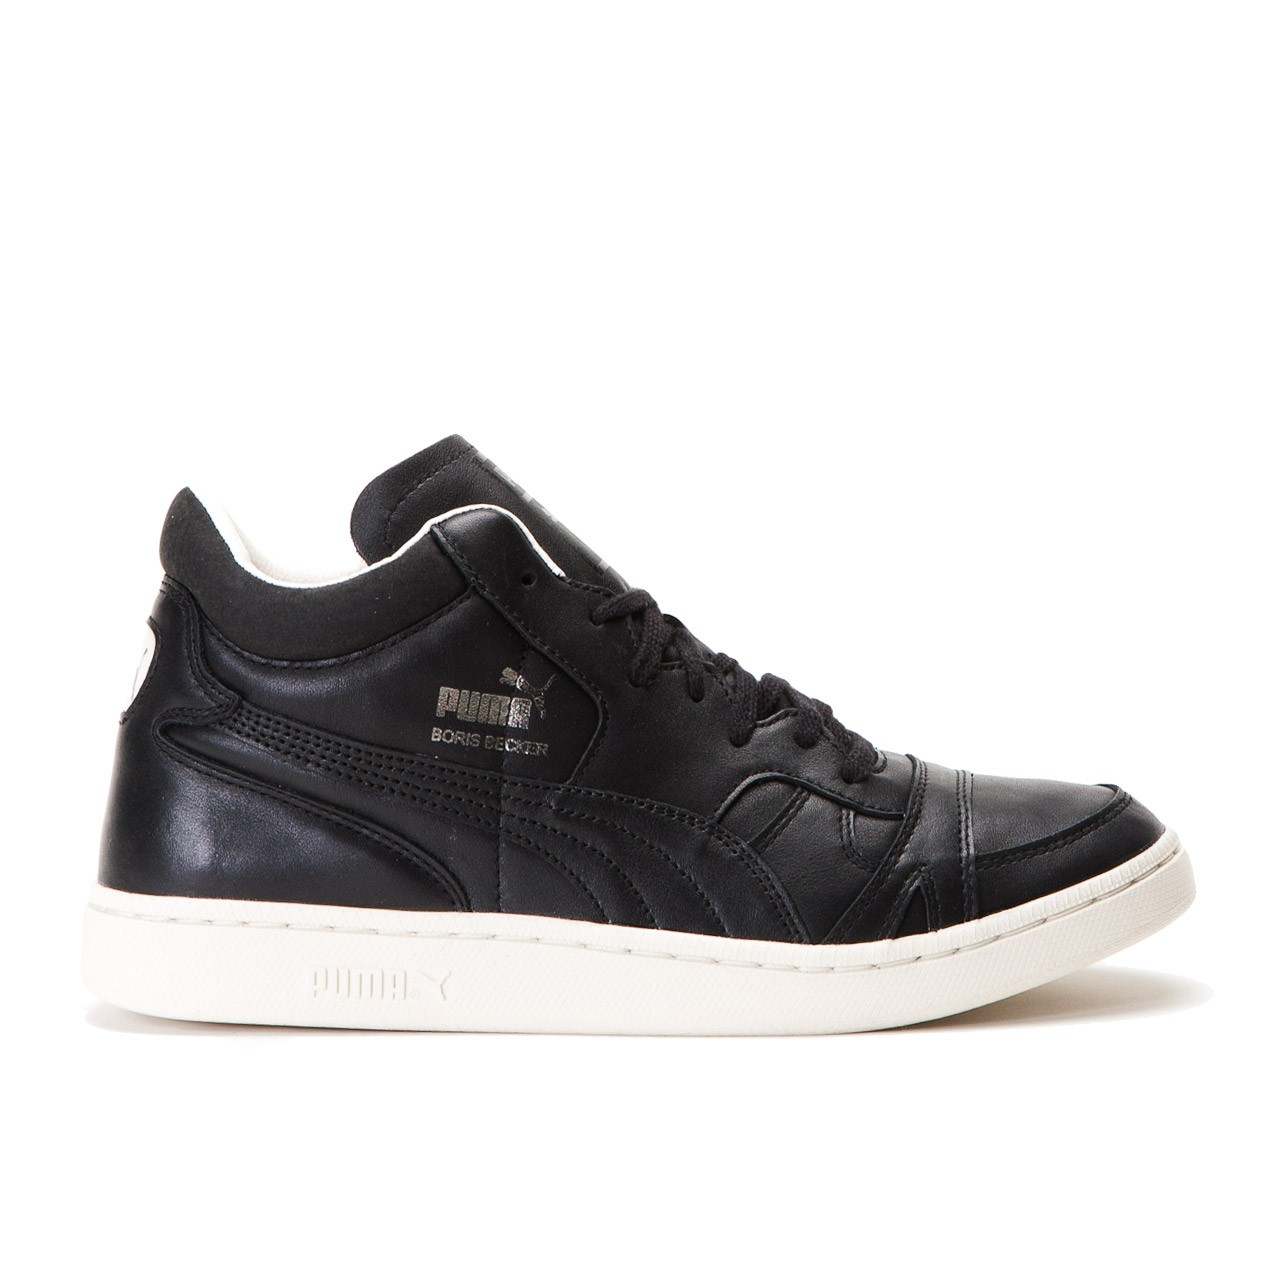 Puma Becker Leather Black